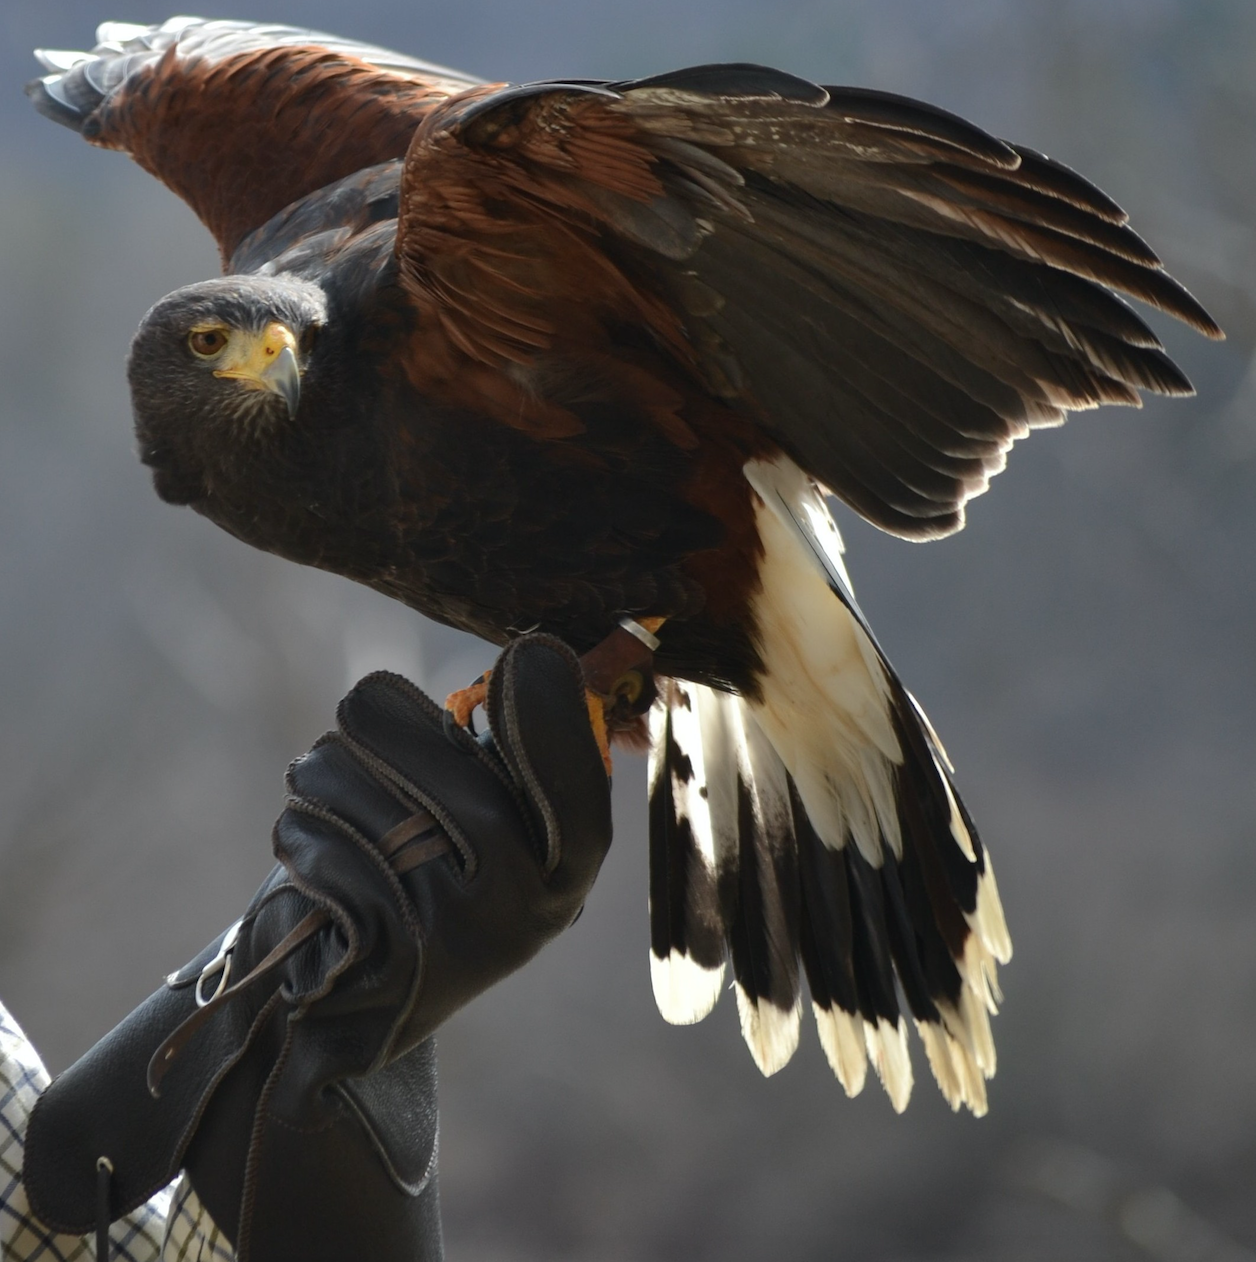 Green Mountain Falconry School Experience The Exhilaration Of Handling And Flying A Trained Harris Hawk In The Beautiful Setting Of Vermont S Green Mountains